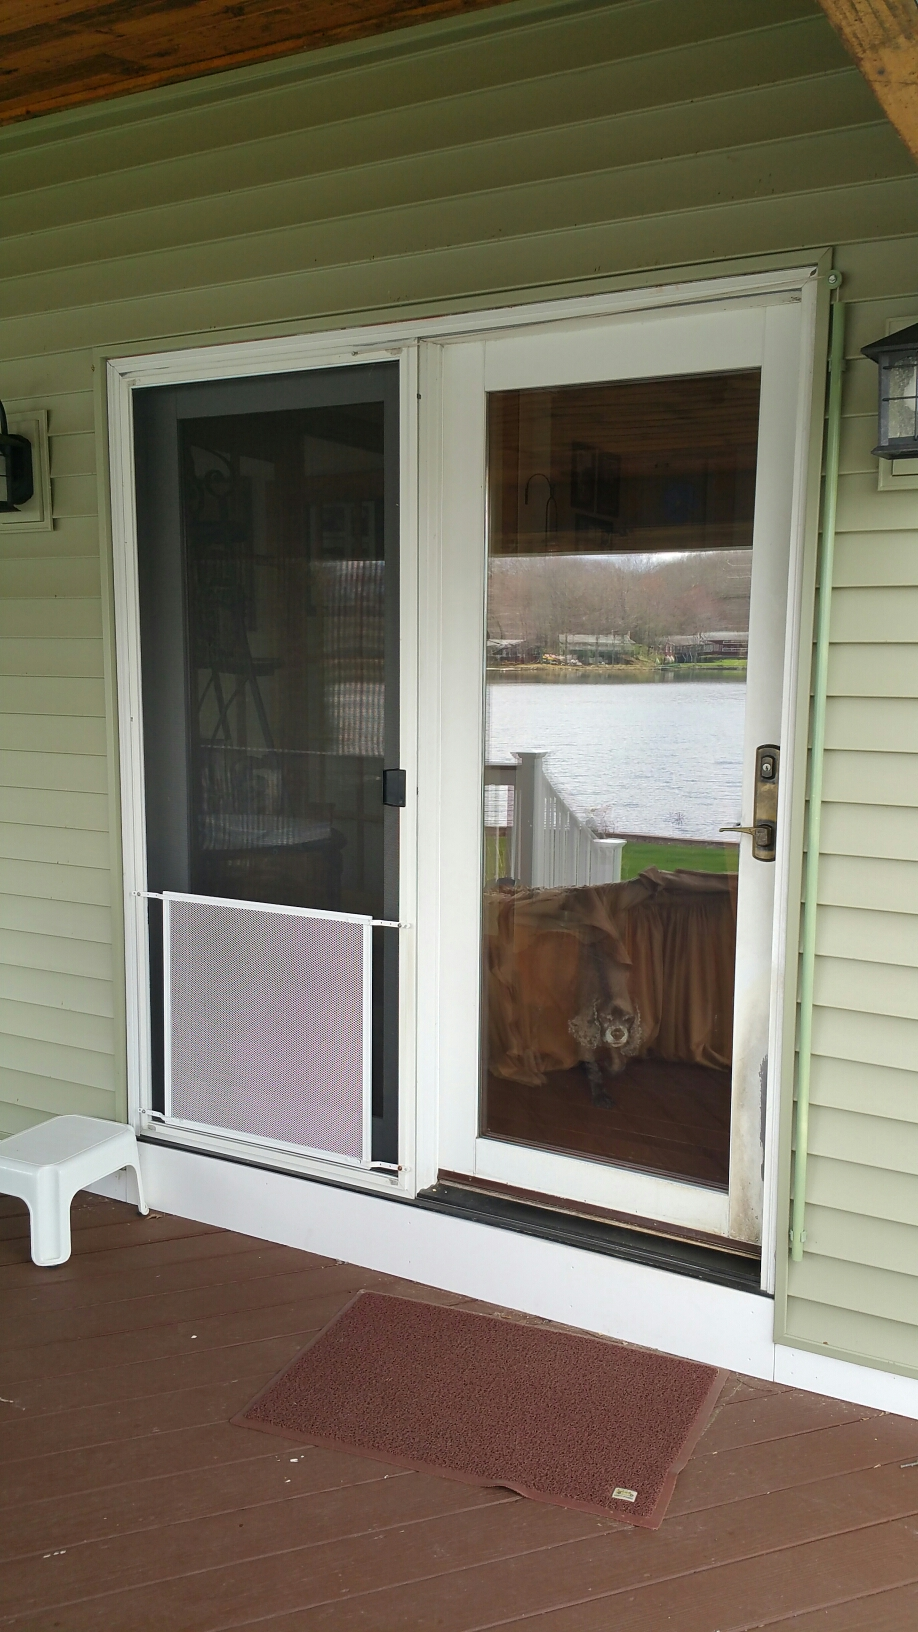 Norwich, CT - This patio door lasted just 11 years before it started to rot... They should have used Renewal by Andersen and then they wouldn't be in this position. A new Renewal by Andersen frenchwood gliding door is on its way!